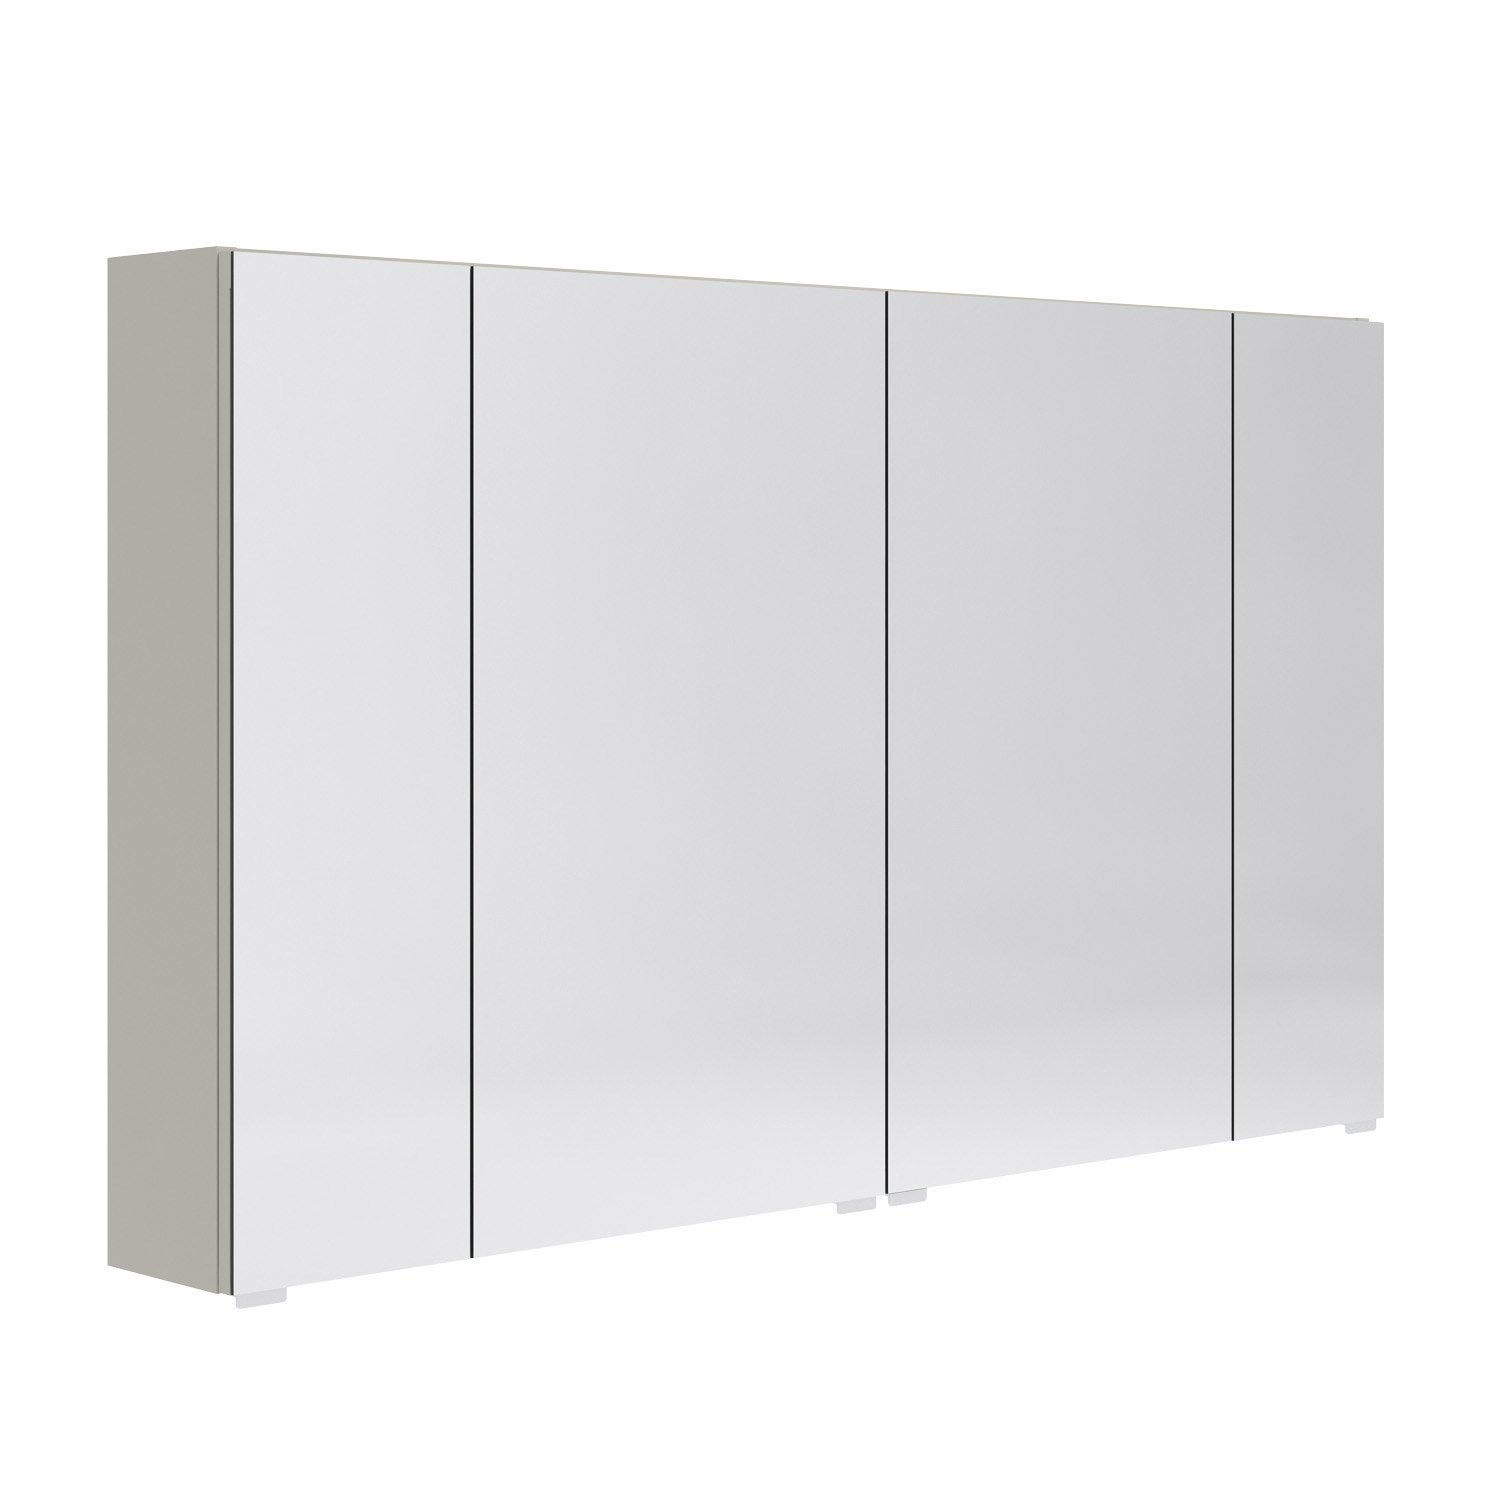 Armoire de toilette l 120 cm beige opale leroy merlin for Meuble de toilette leroy merlin